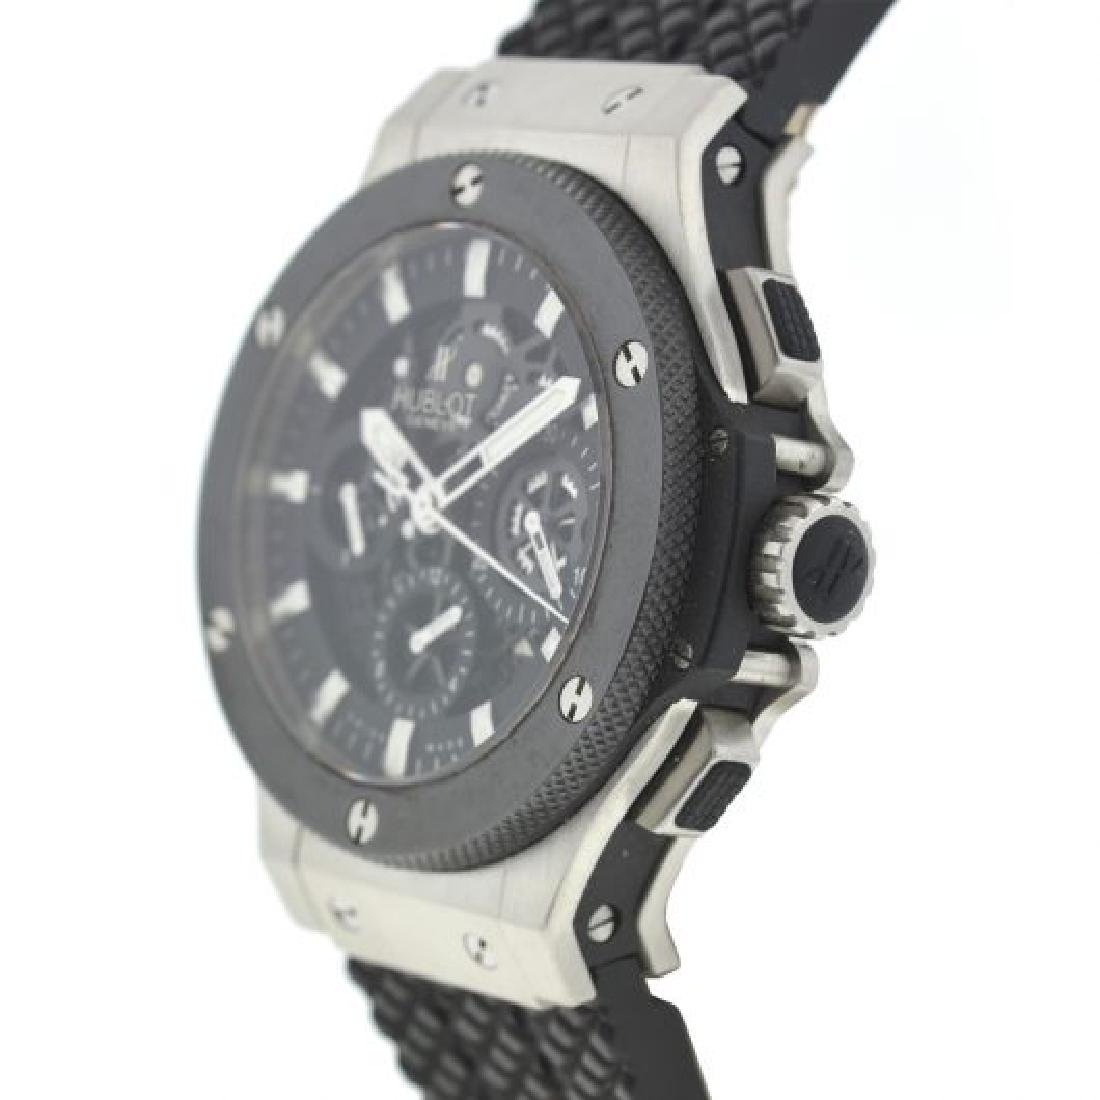 Hublot Big Bang Aero Bang Watch - 3